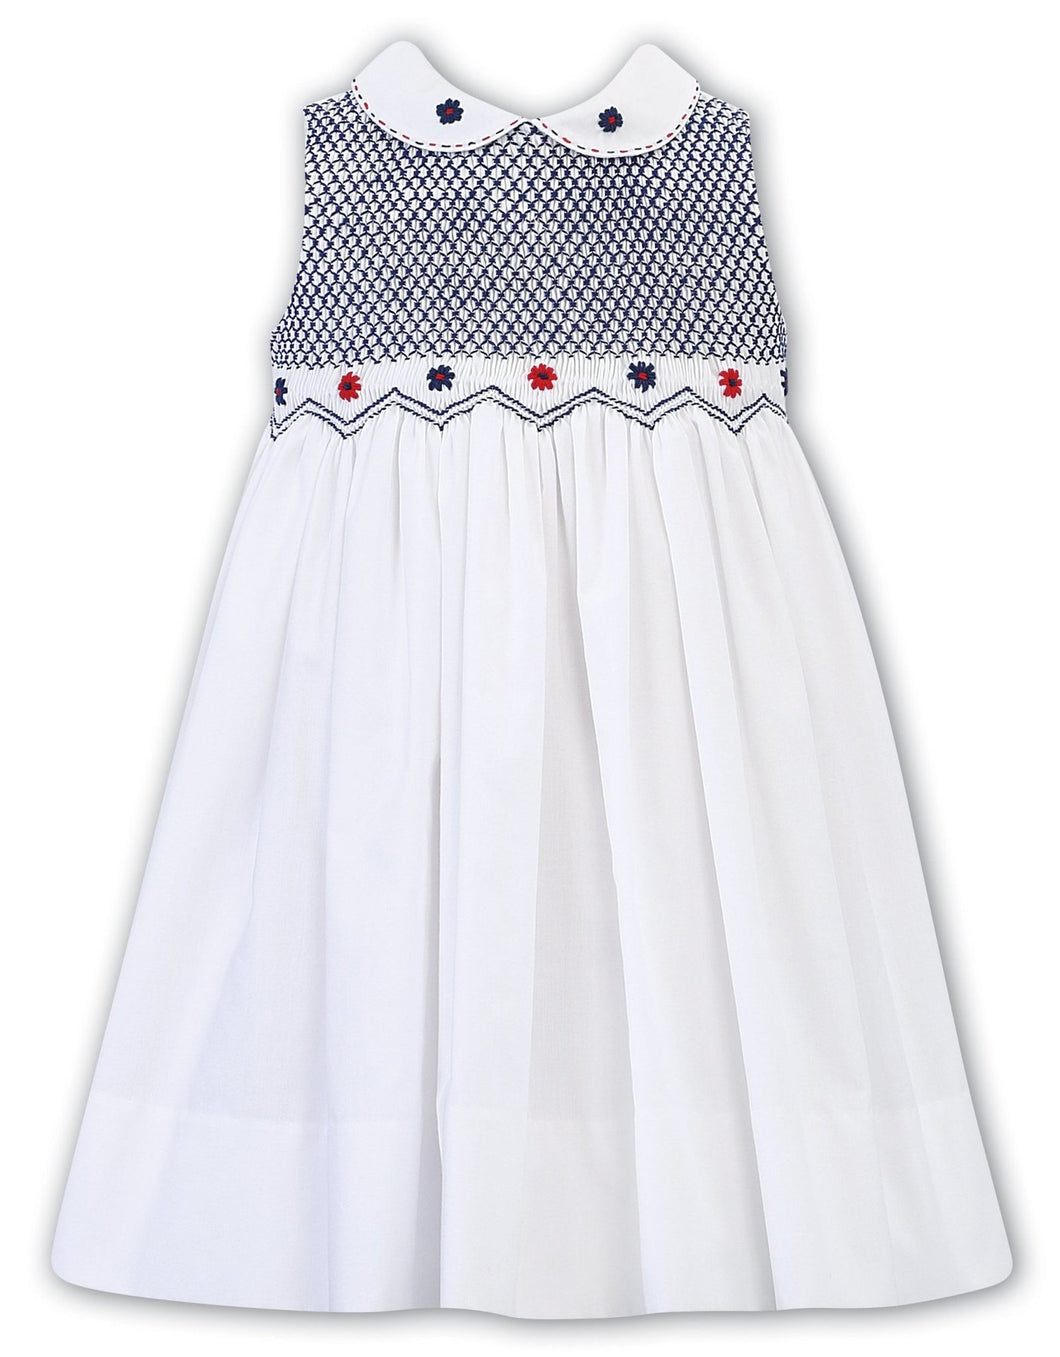 Girls Sleeveless Dress, Hand Smocking and Embroidered Bodice, Peter Pan Collar with Embroidered Detail.